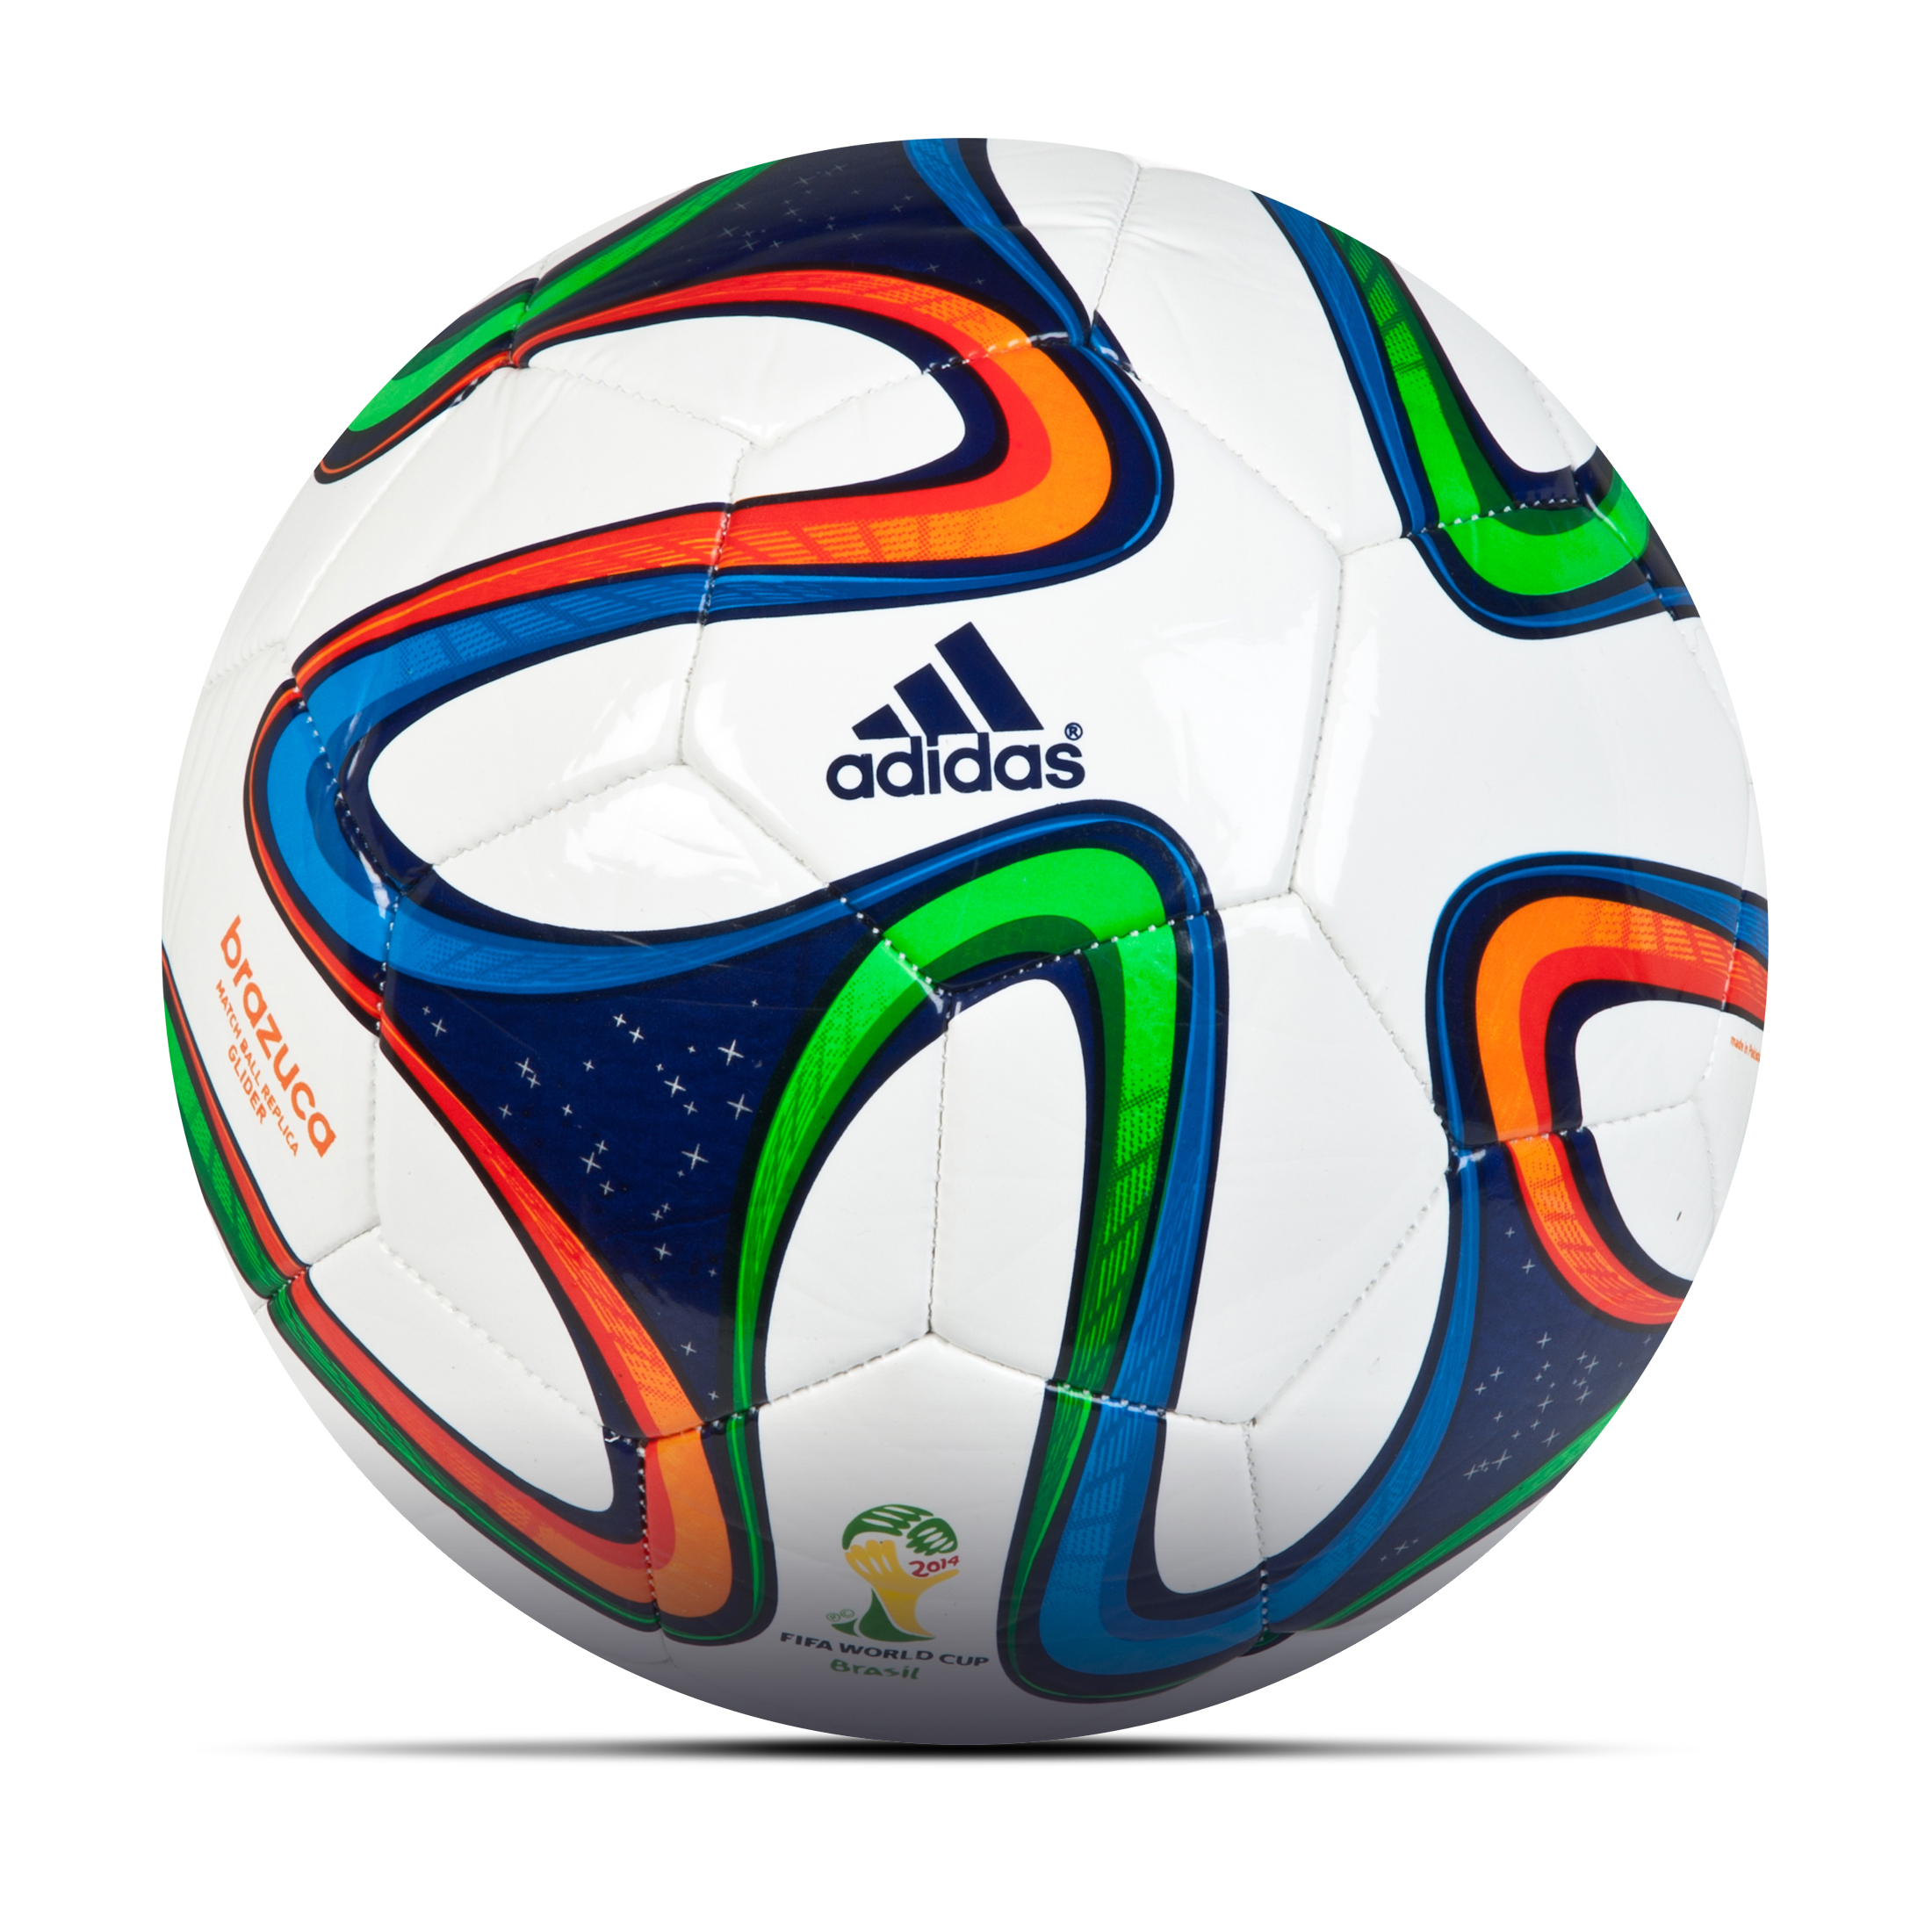 Adidas Brazuca Glider Football - White/Night Blue/Multi